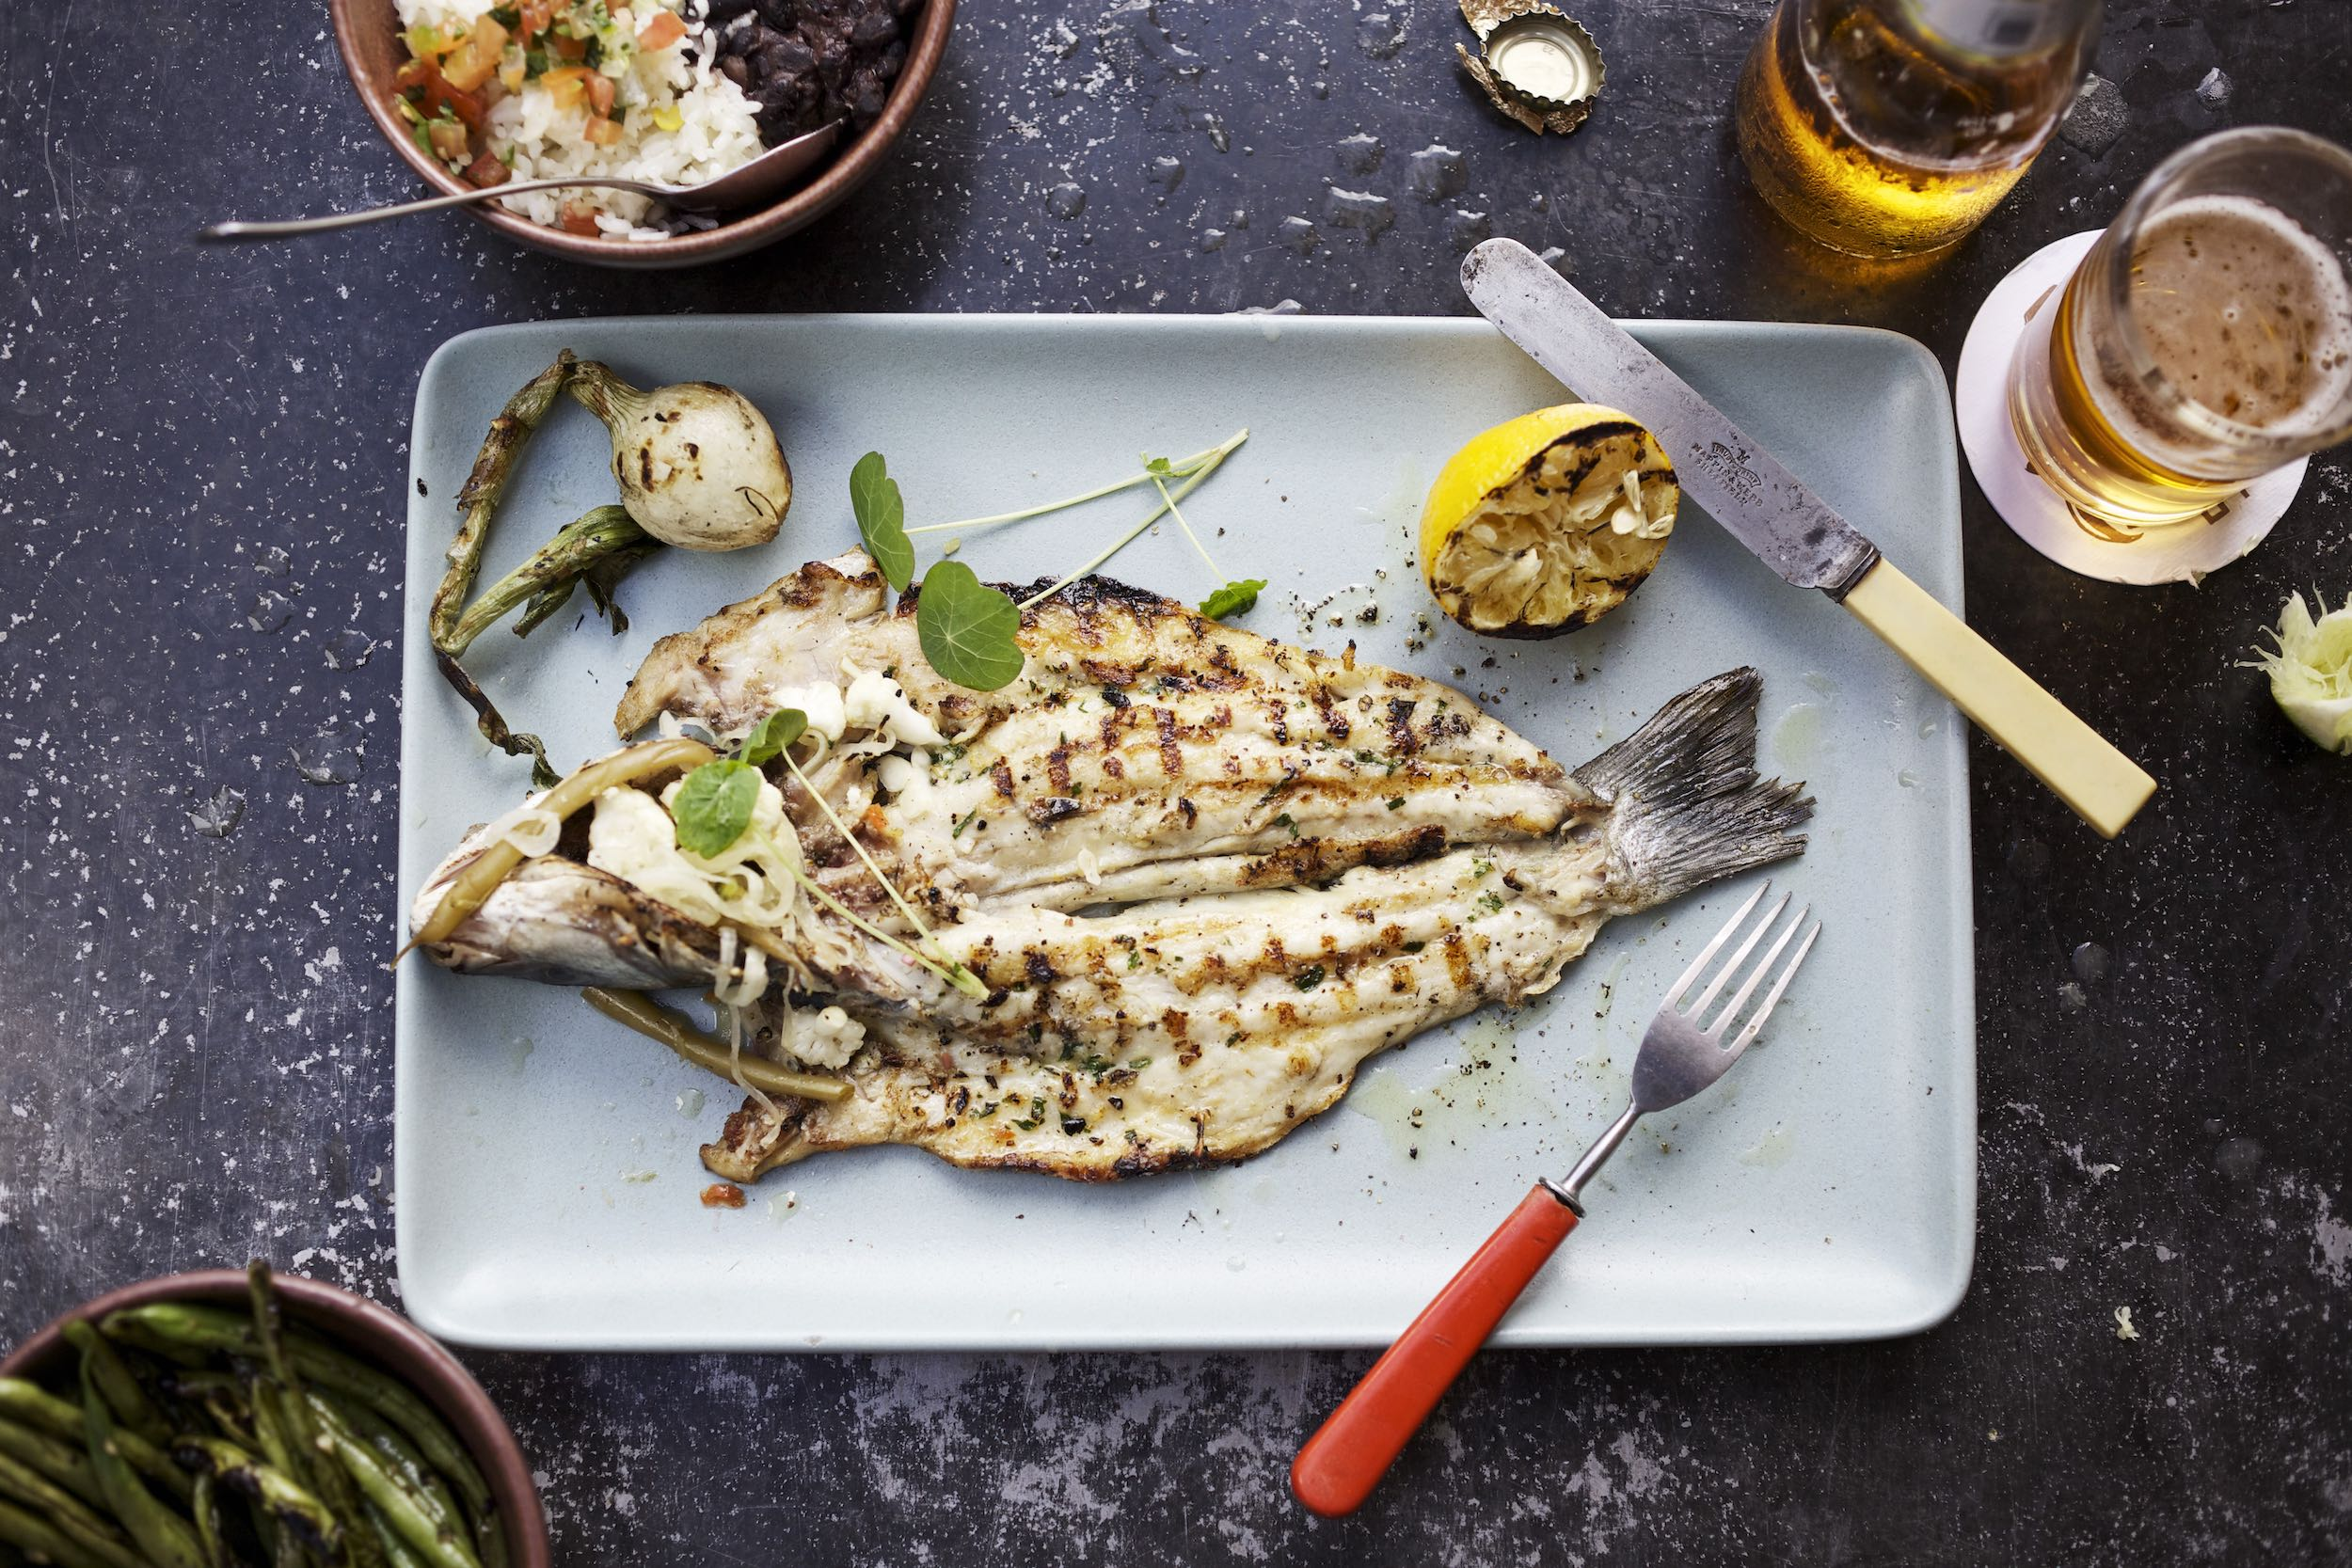 Jody Horton Photography - Whole, grilled fish on a light blue plate with grilled accompaniments.